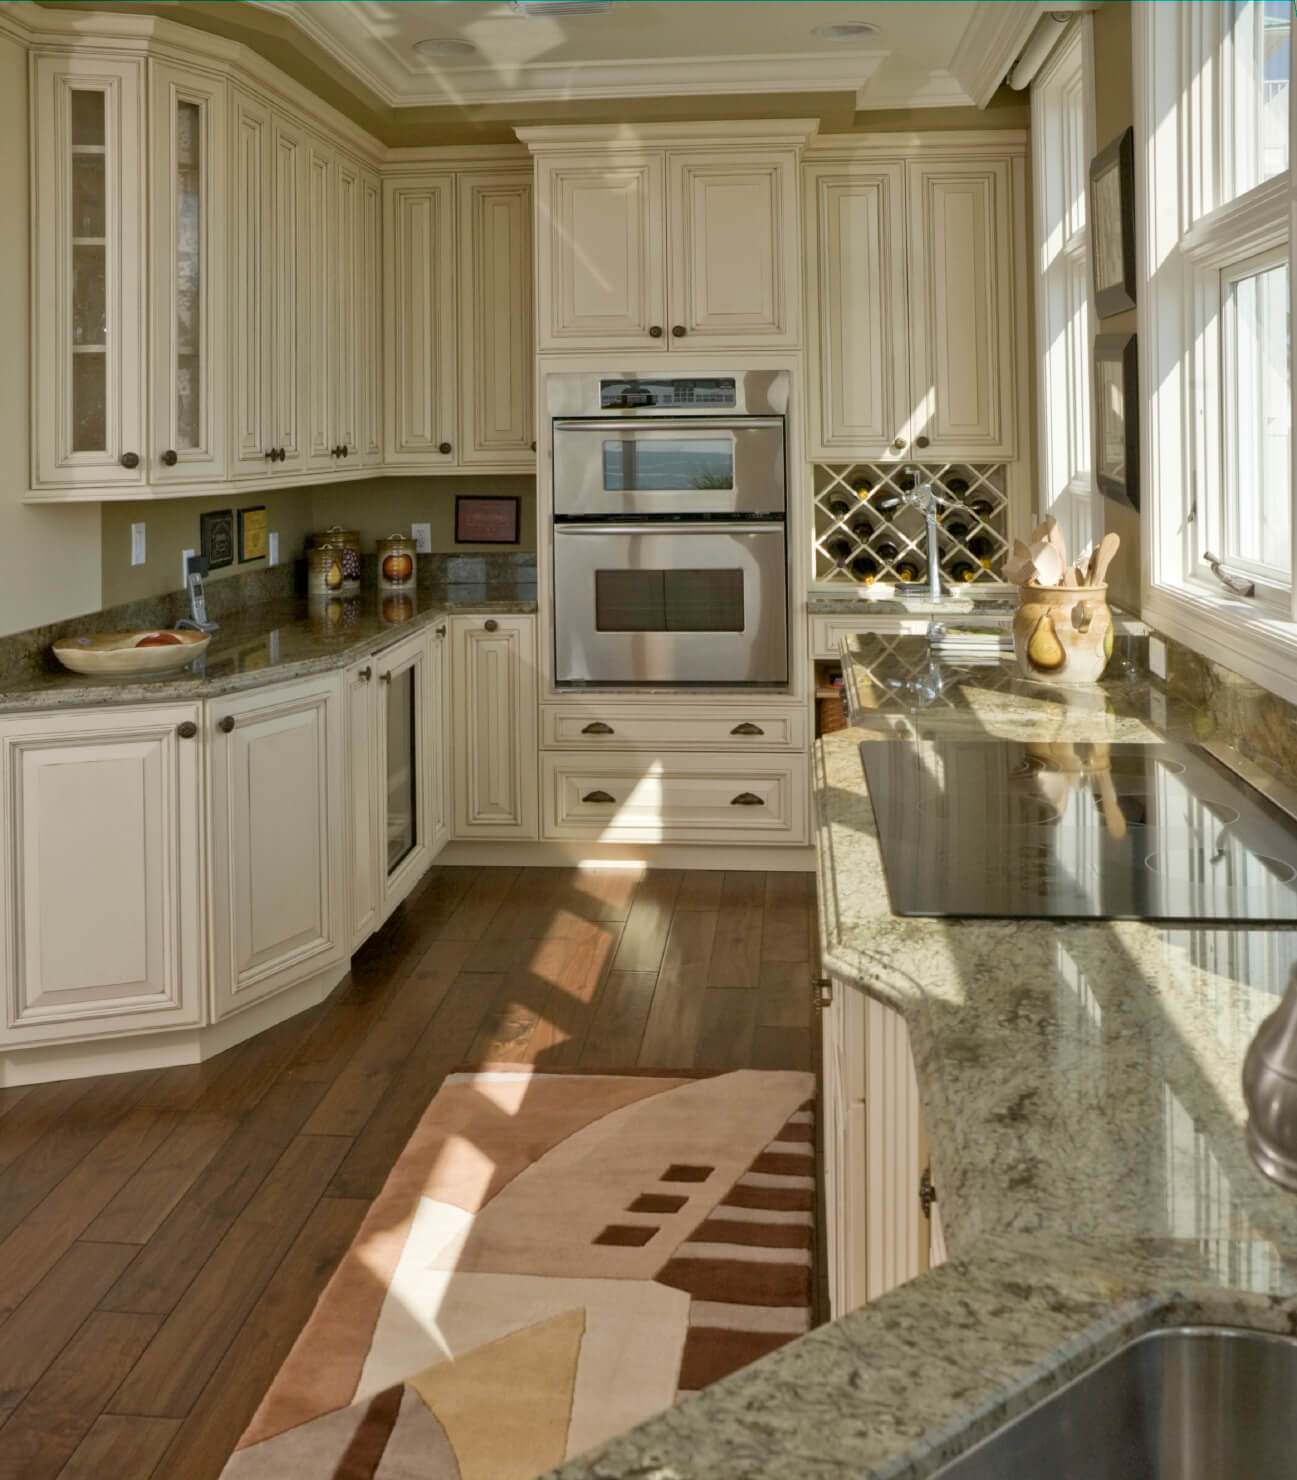 white kitchen designs pictures kitchen with white cabinets Treated white cabinets add to the old fashioned look in this compact kitchen featuring geometric rug